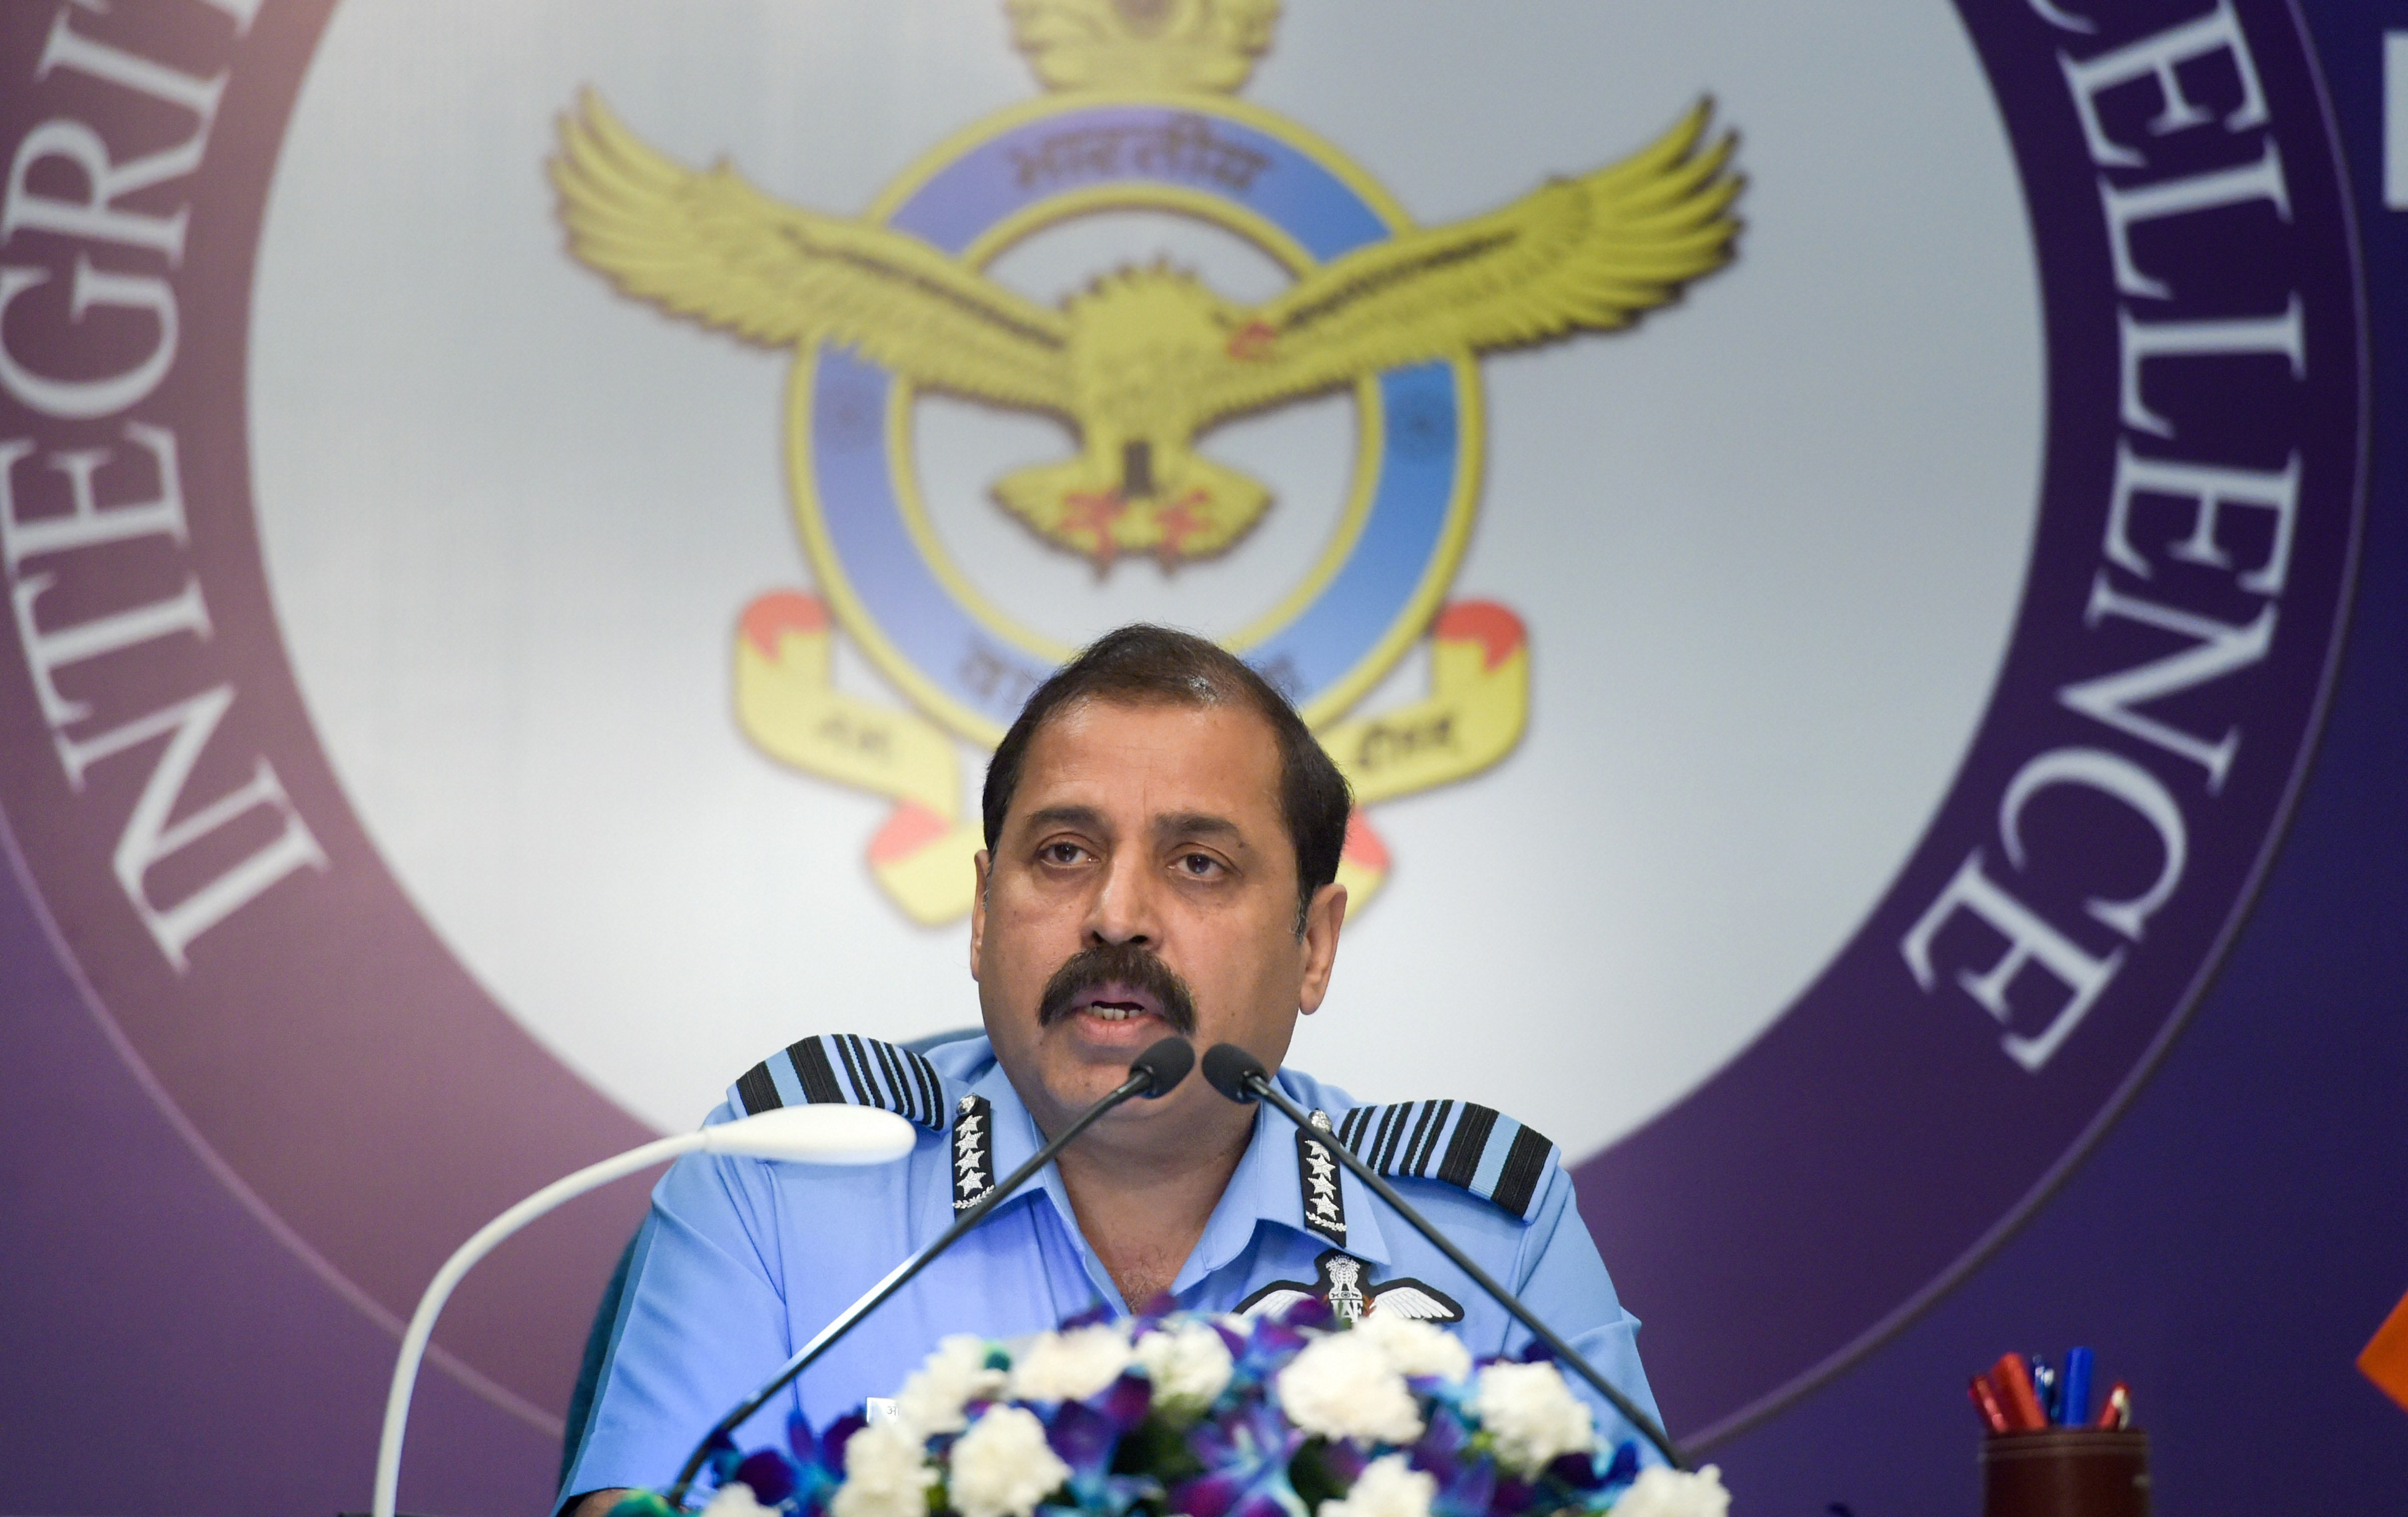 Air Chief Marshal Rakesh Kumar Singh Bhadauria addresses his first news conference as the new IAF chief at Akash Air Force Officers' Mess in New Delhi on October 4.